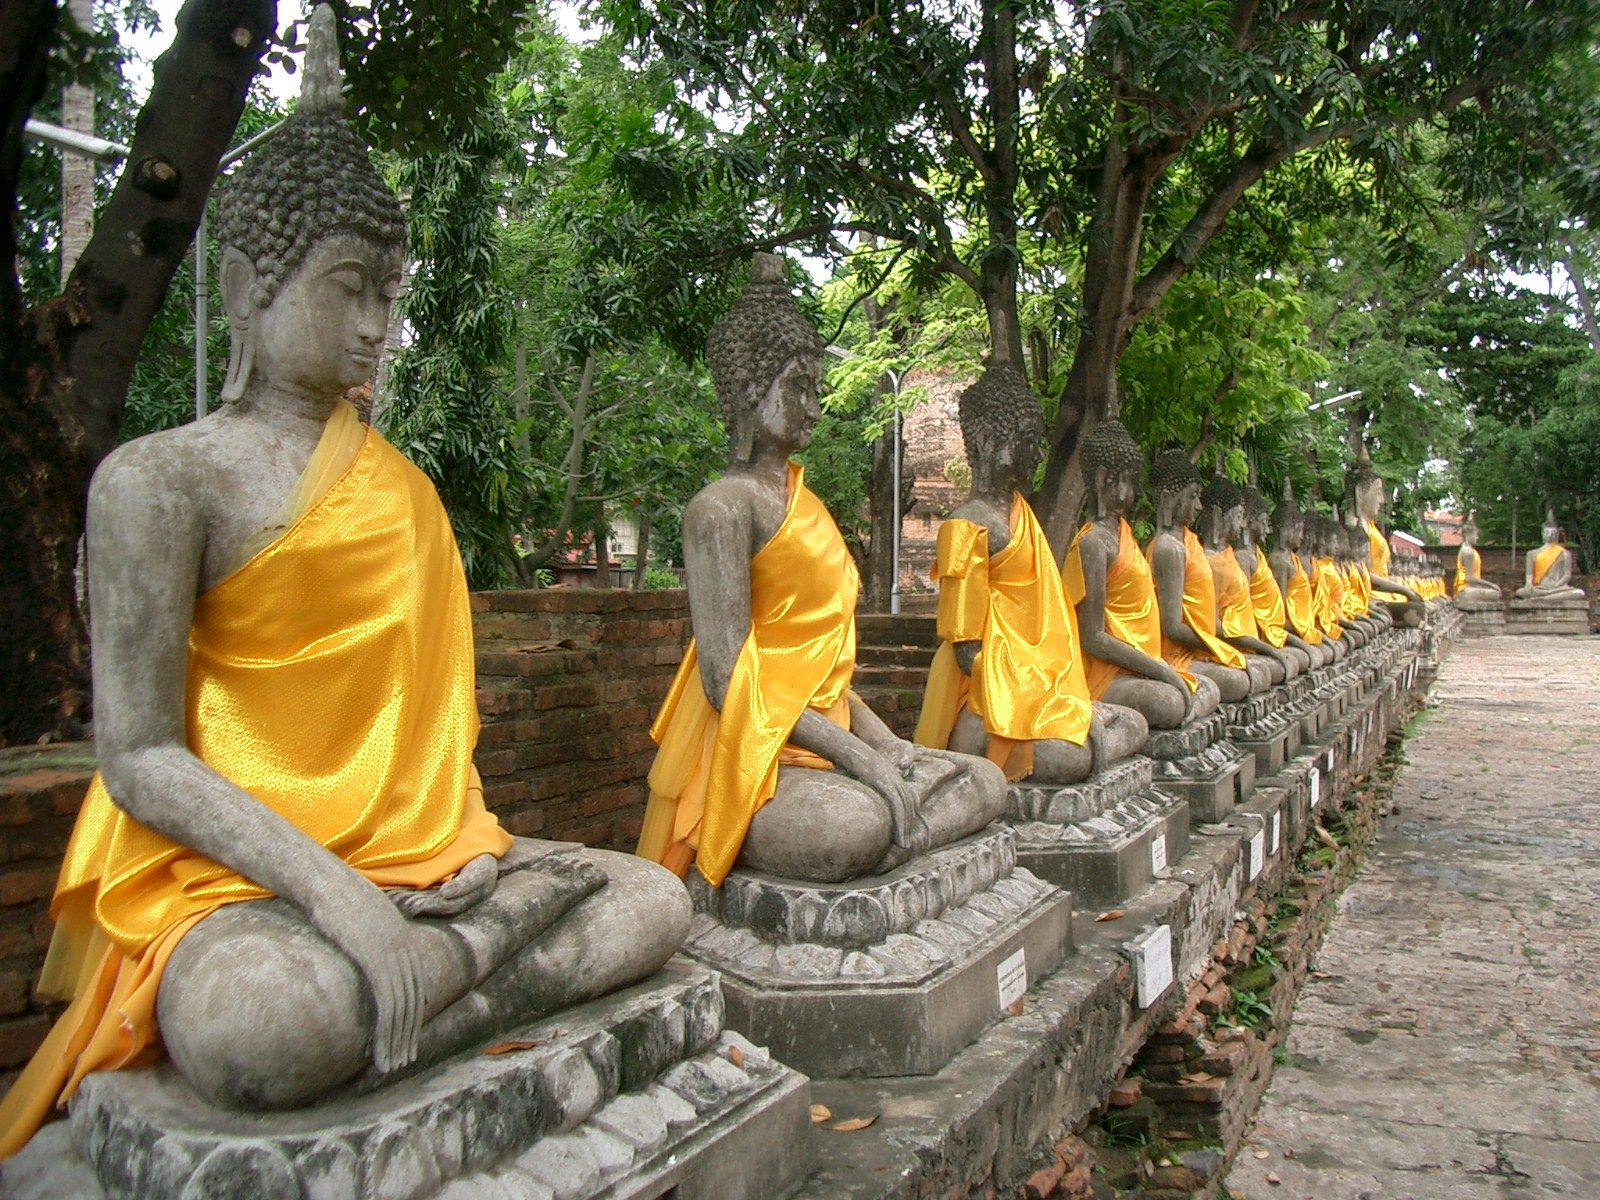 Looking for travel ideas going to bangkok soon